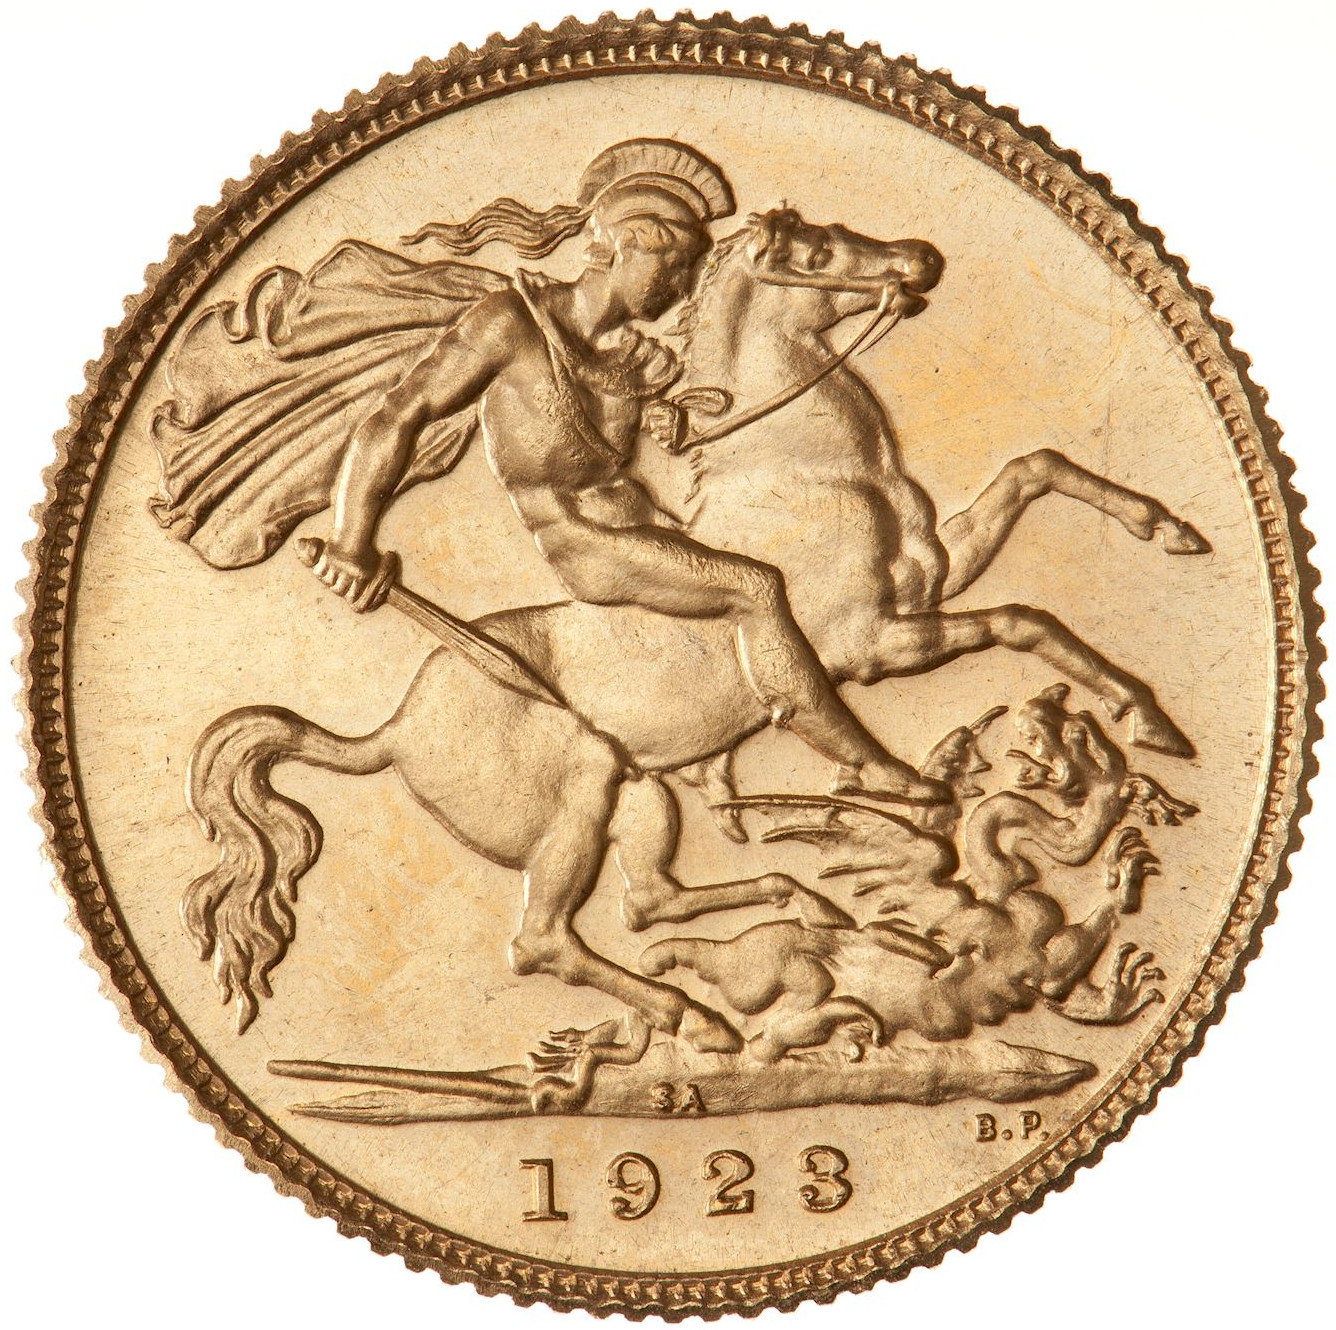 Half Sovereign (Pre-decimal, St George): Photo Proof Coin - 1/2 Sovereign, South Africa, 1923